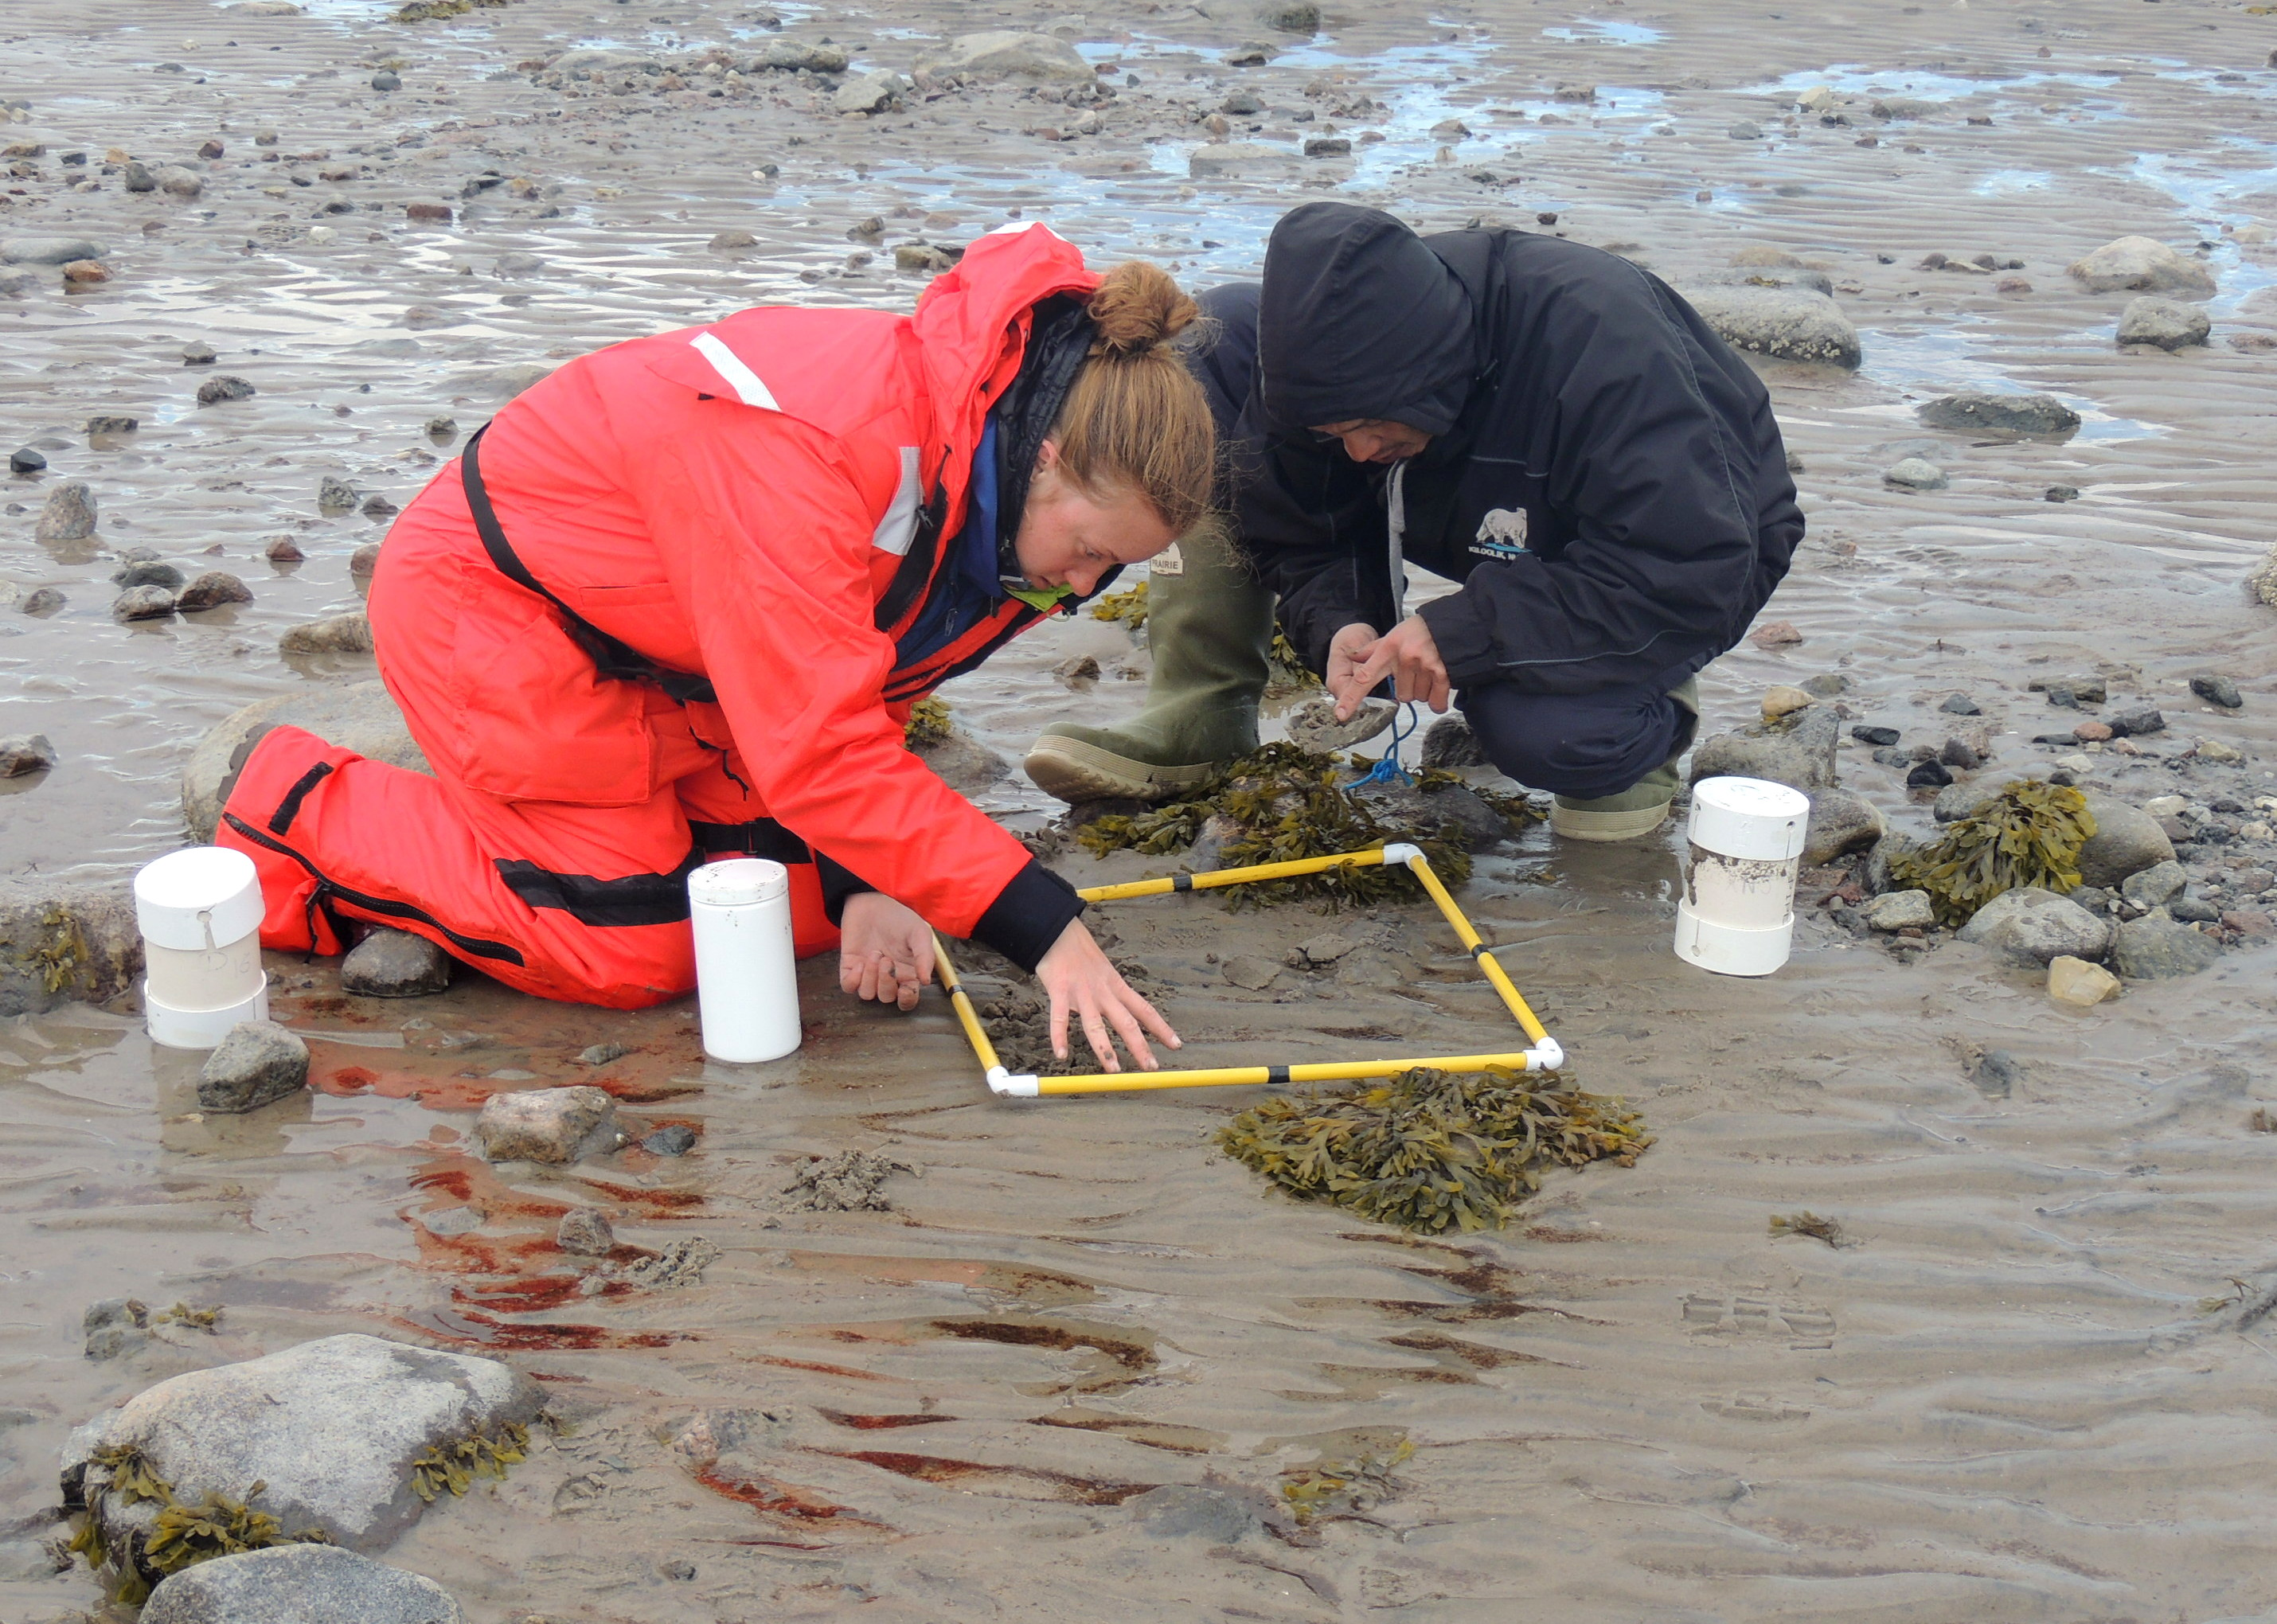 DFO scientist Kristen Adair and Gary Illupaalik, a member of the local field crew, collect invertebrate samples in the mud at low tide in Steensby Inlet in north Baffin. Researchers are concerned about how future shipping traffic to the Mary River iron mine might bring new species into the waters there. (PHOTO COURTESY OF DFO)